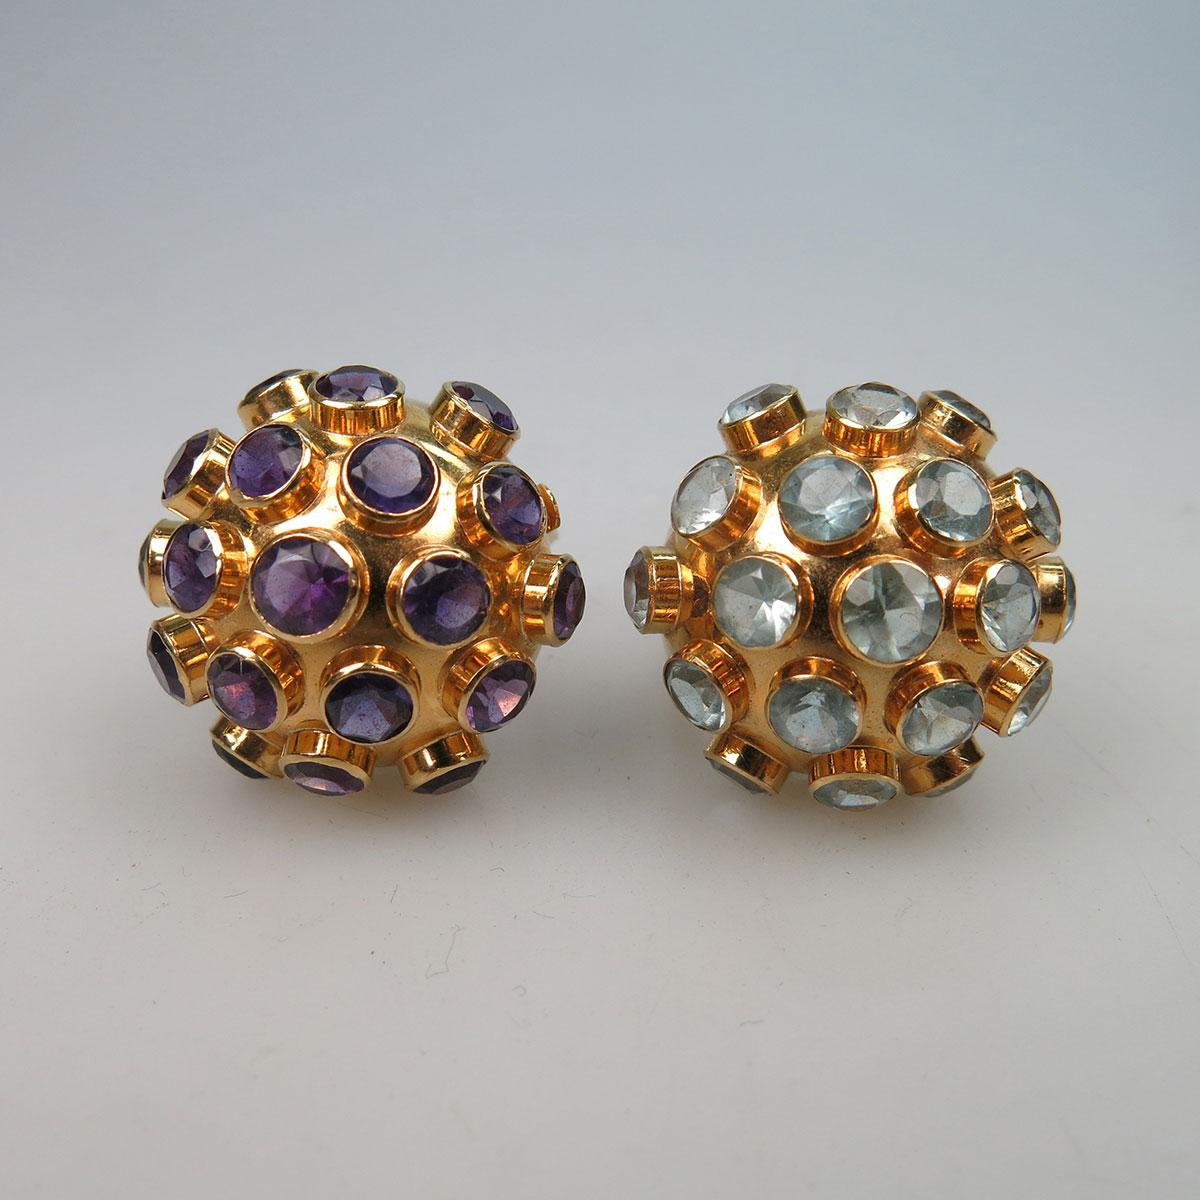 2 x 18k Yellow Gold Rings